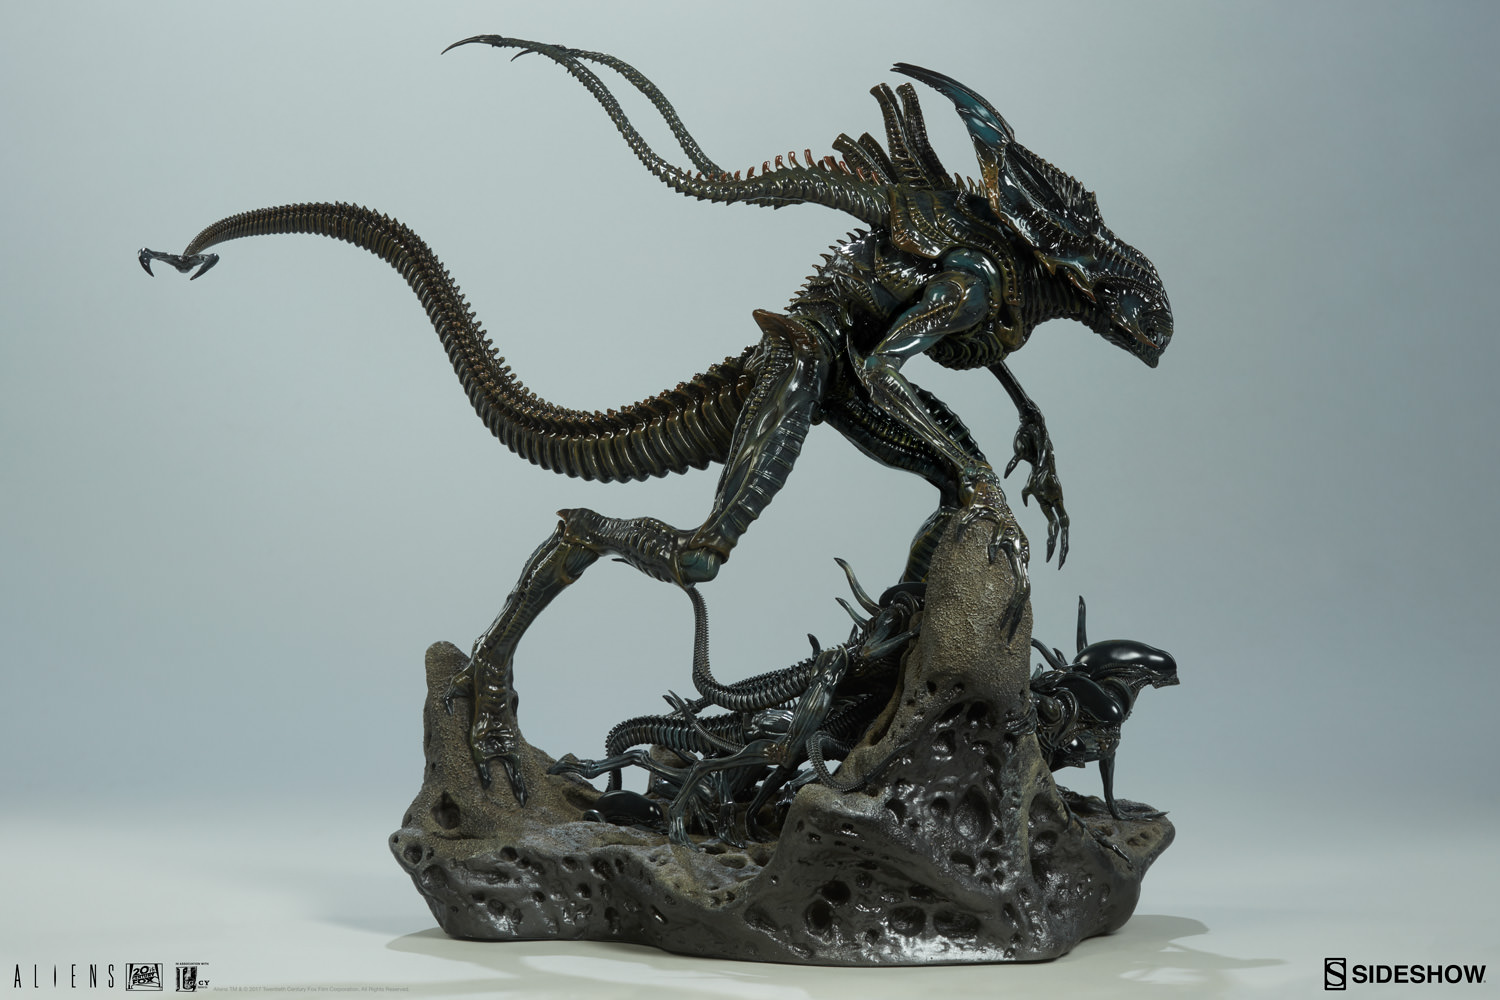 Alien Alien King Maquette by Sideshow Collectibles ...